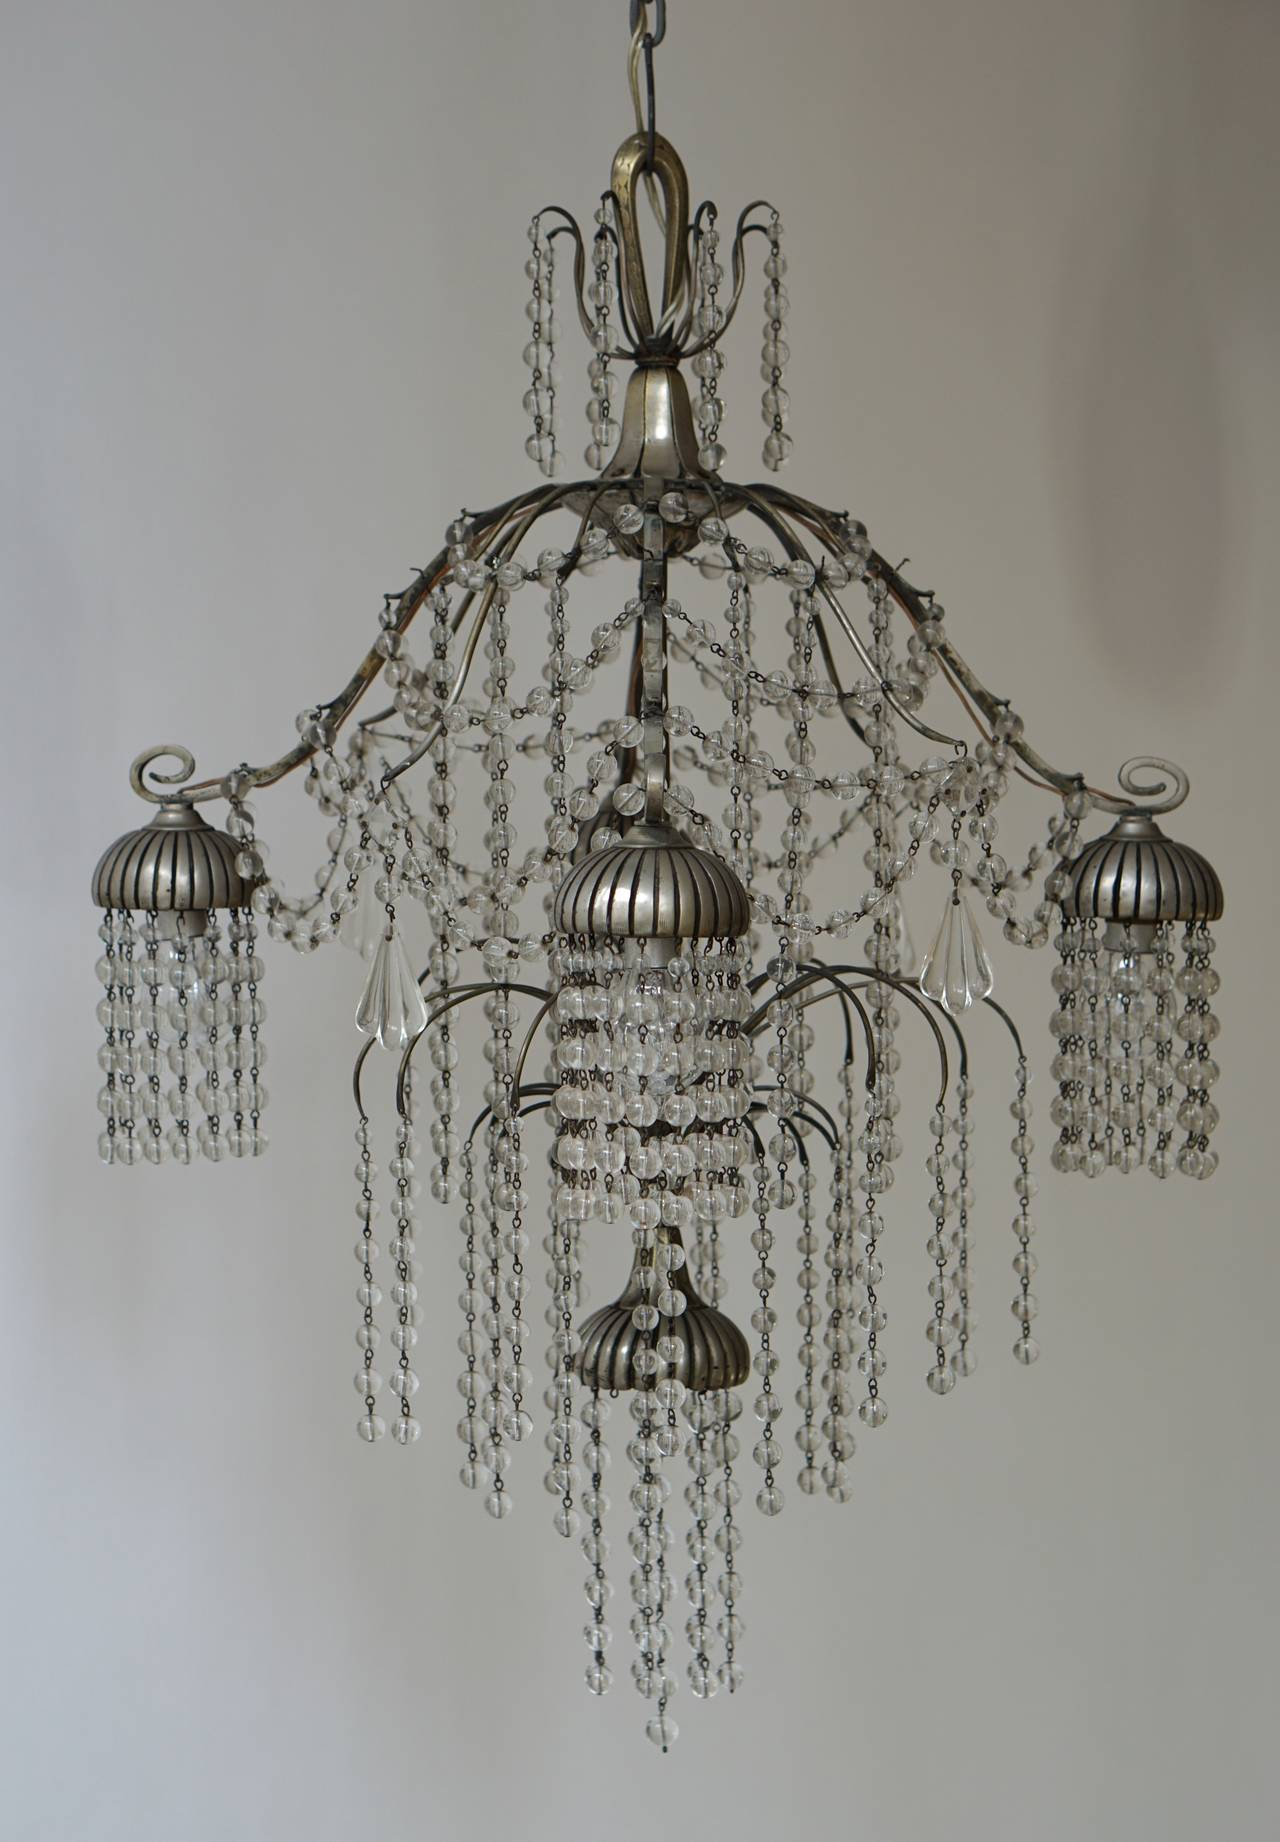 Unique Art Deco Chandelier For Sale at 1stdibs